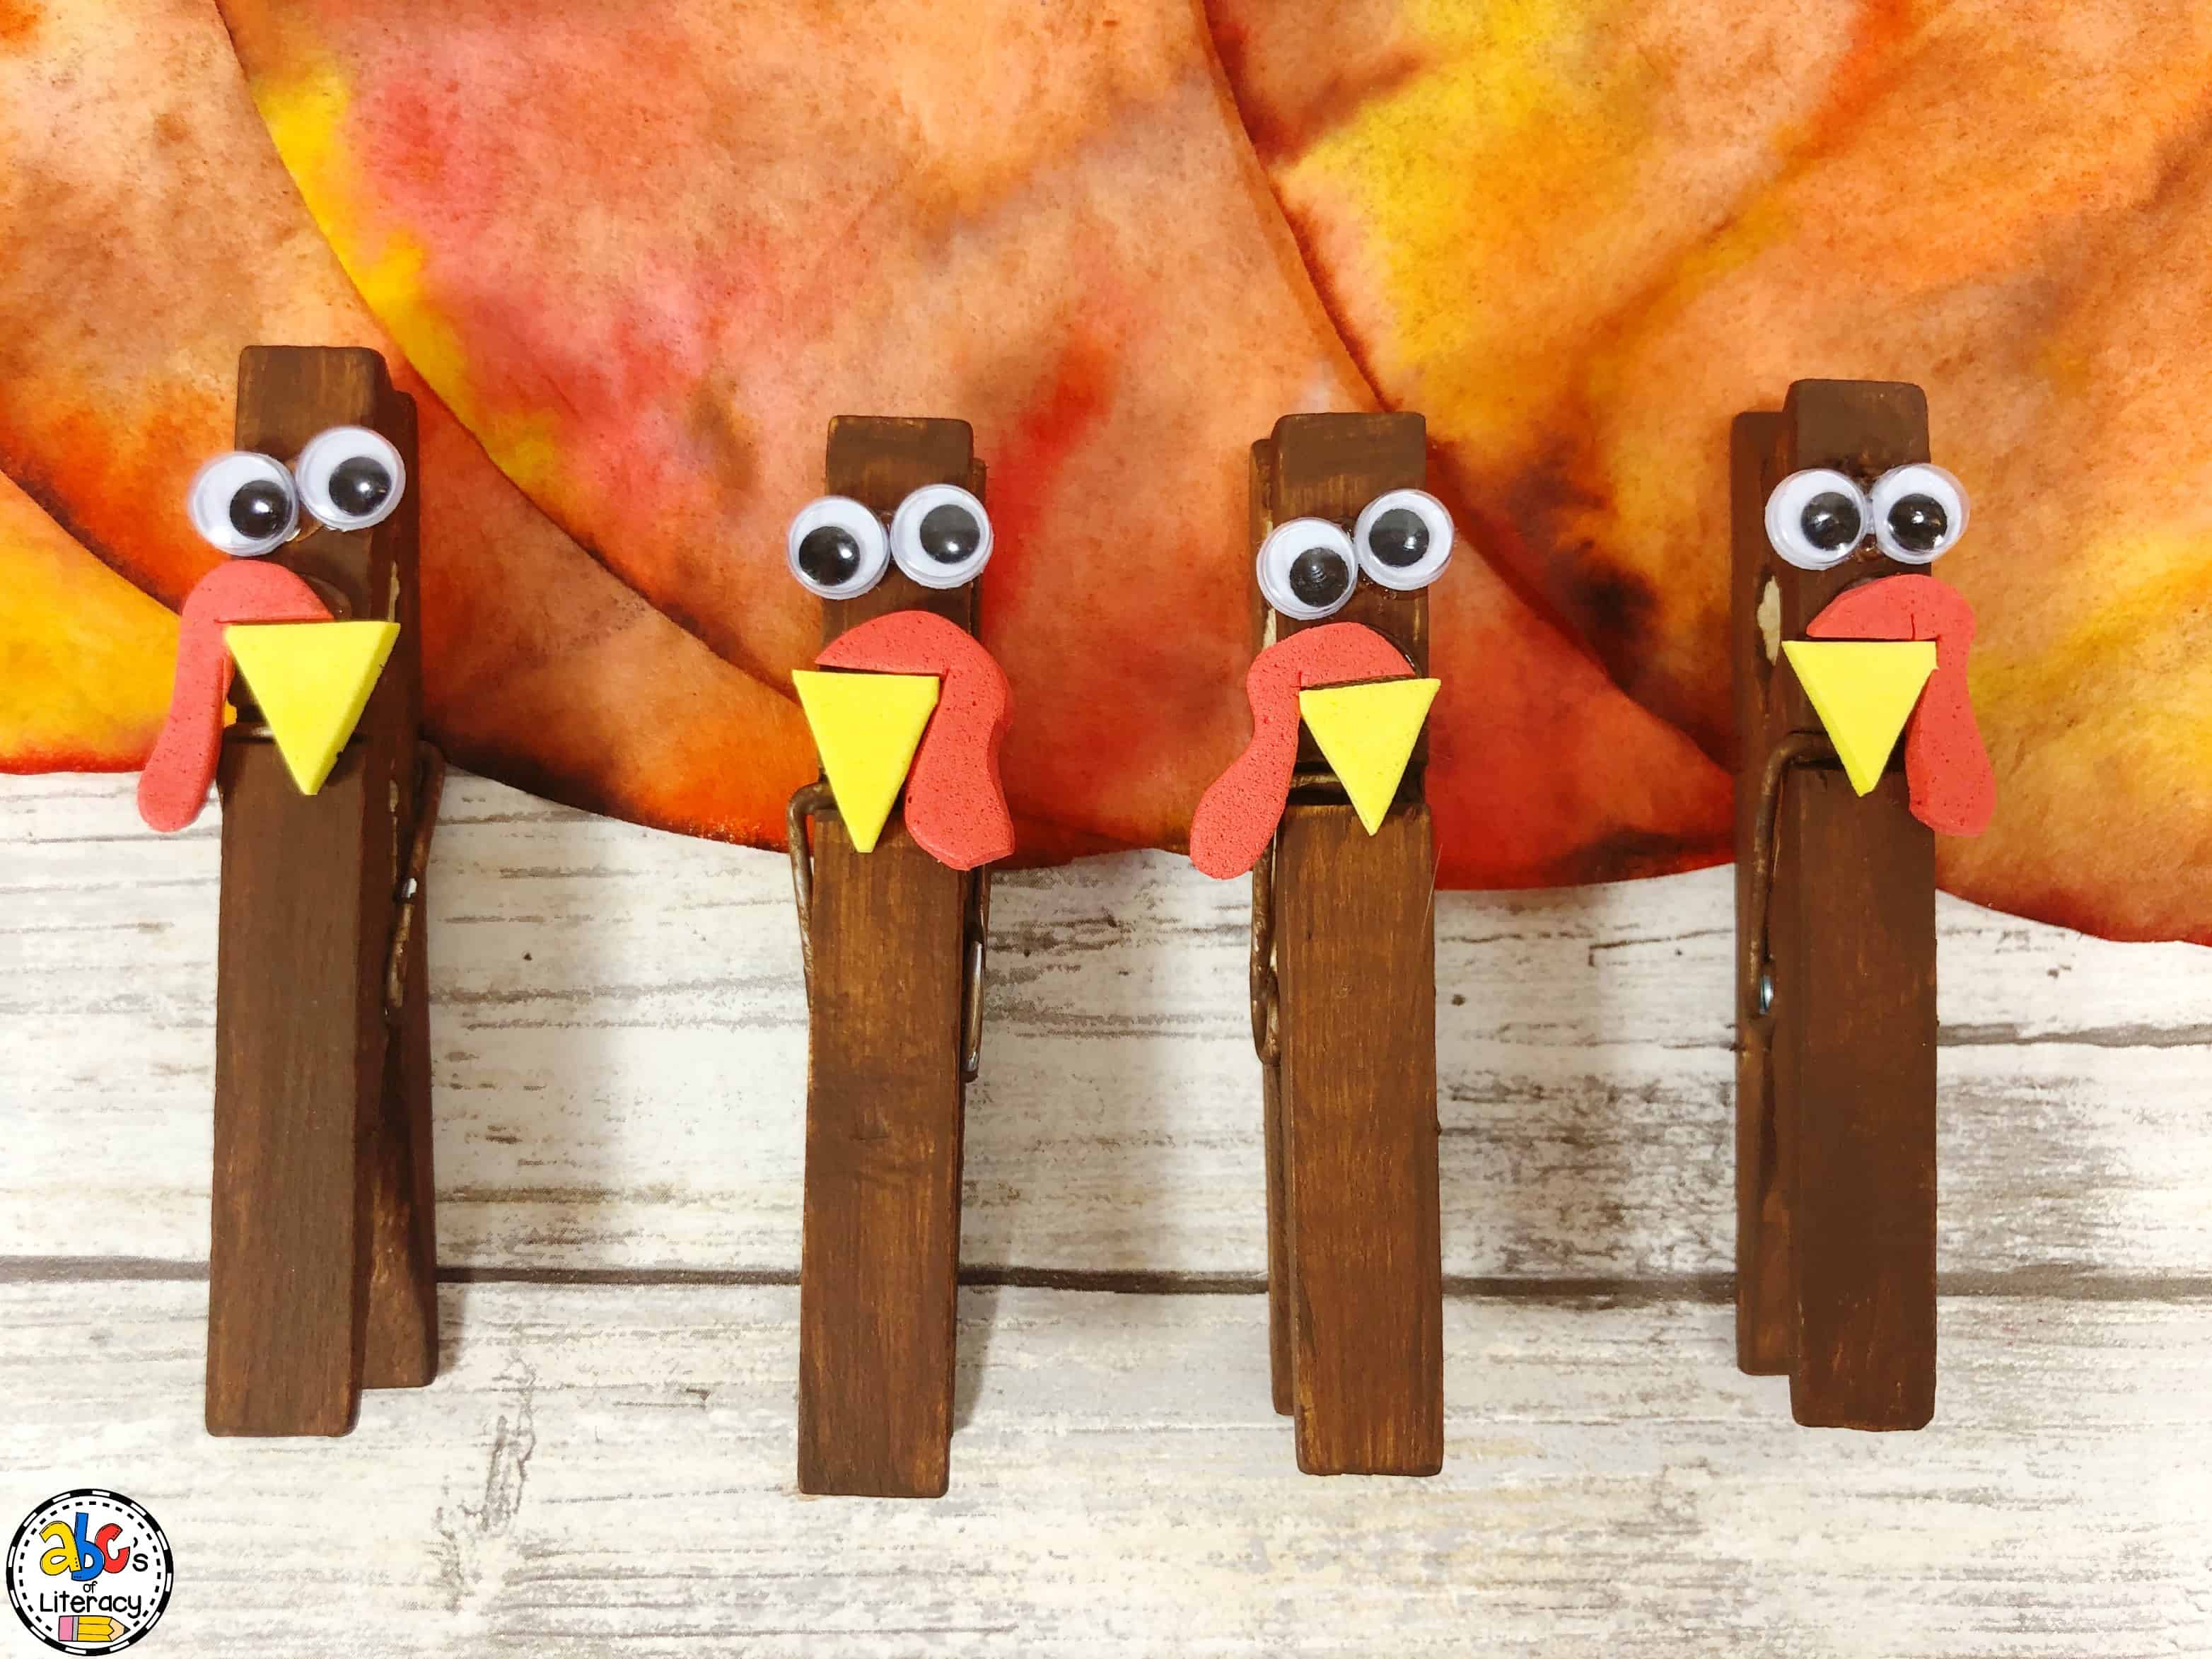 ThisTie Dye Coffee Filter Turkey Craft is a fun, process art activity to do in a classroom or homeschool. This Turkey craft is easy for all ages to create.